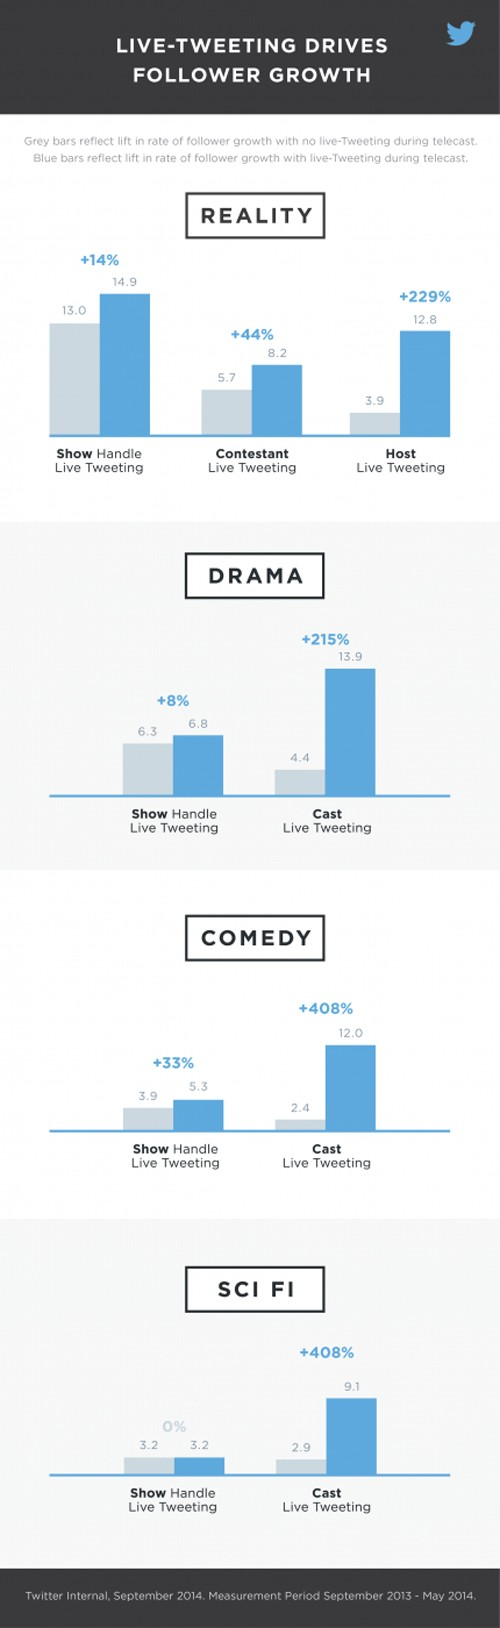 Live-Tweeting_infographic_twitter